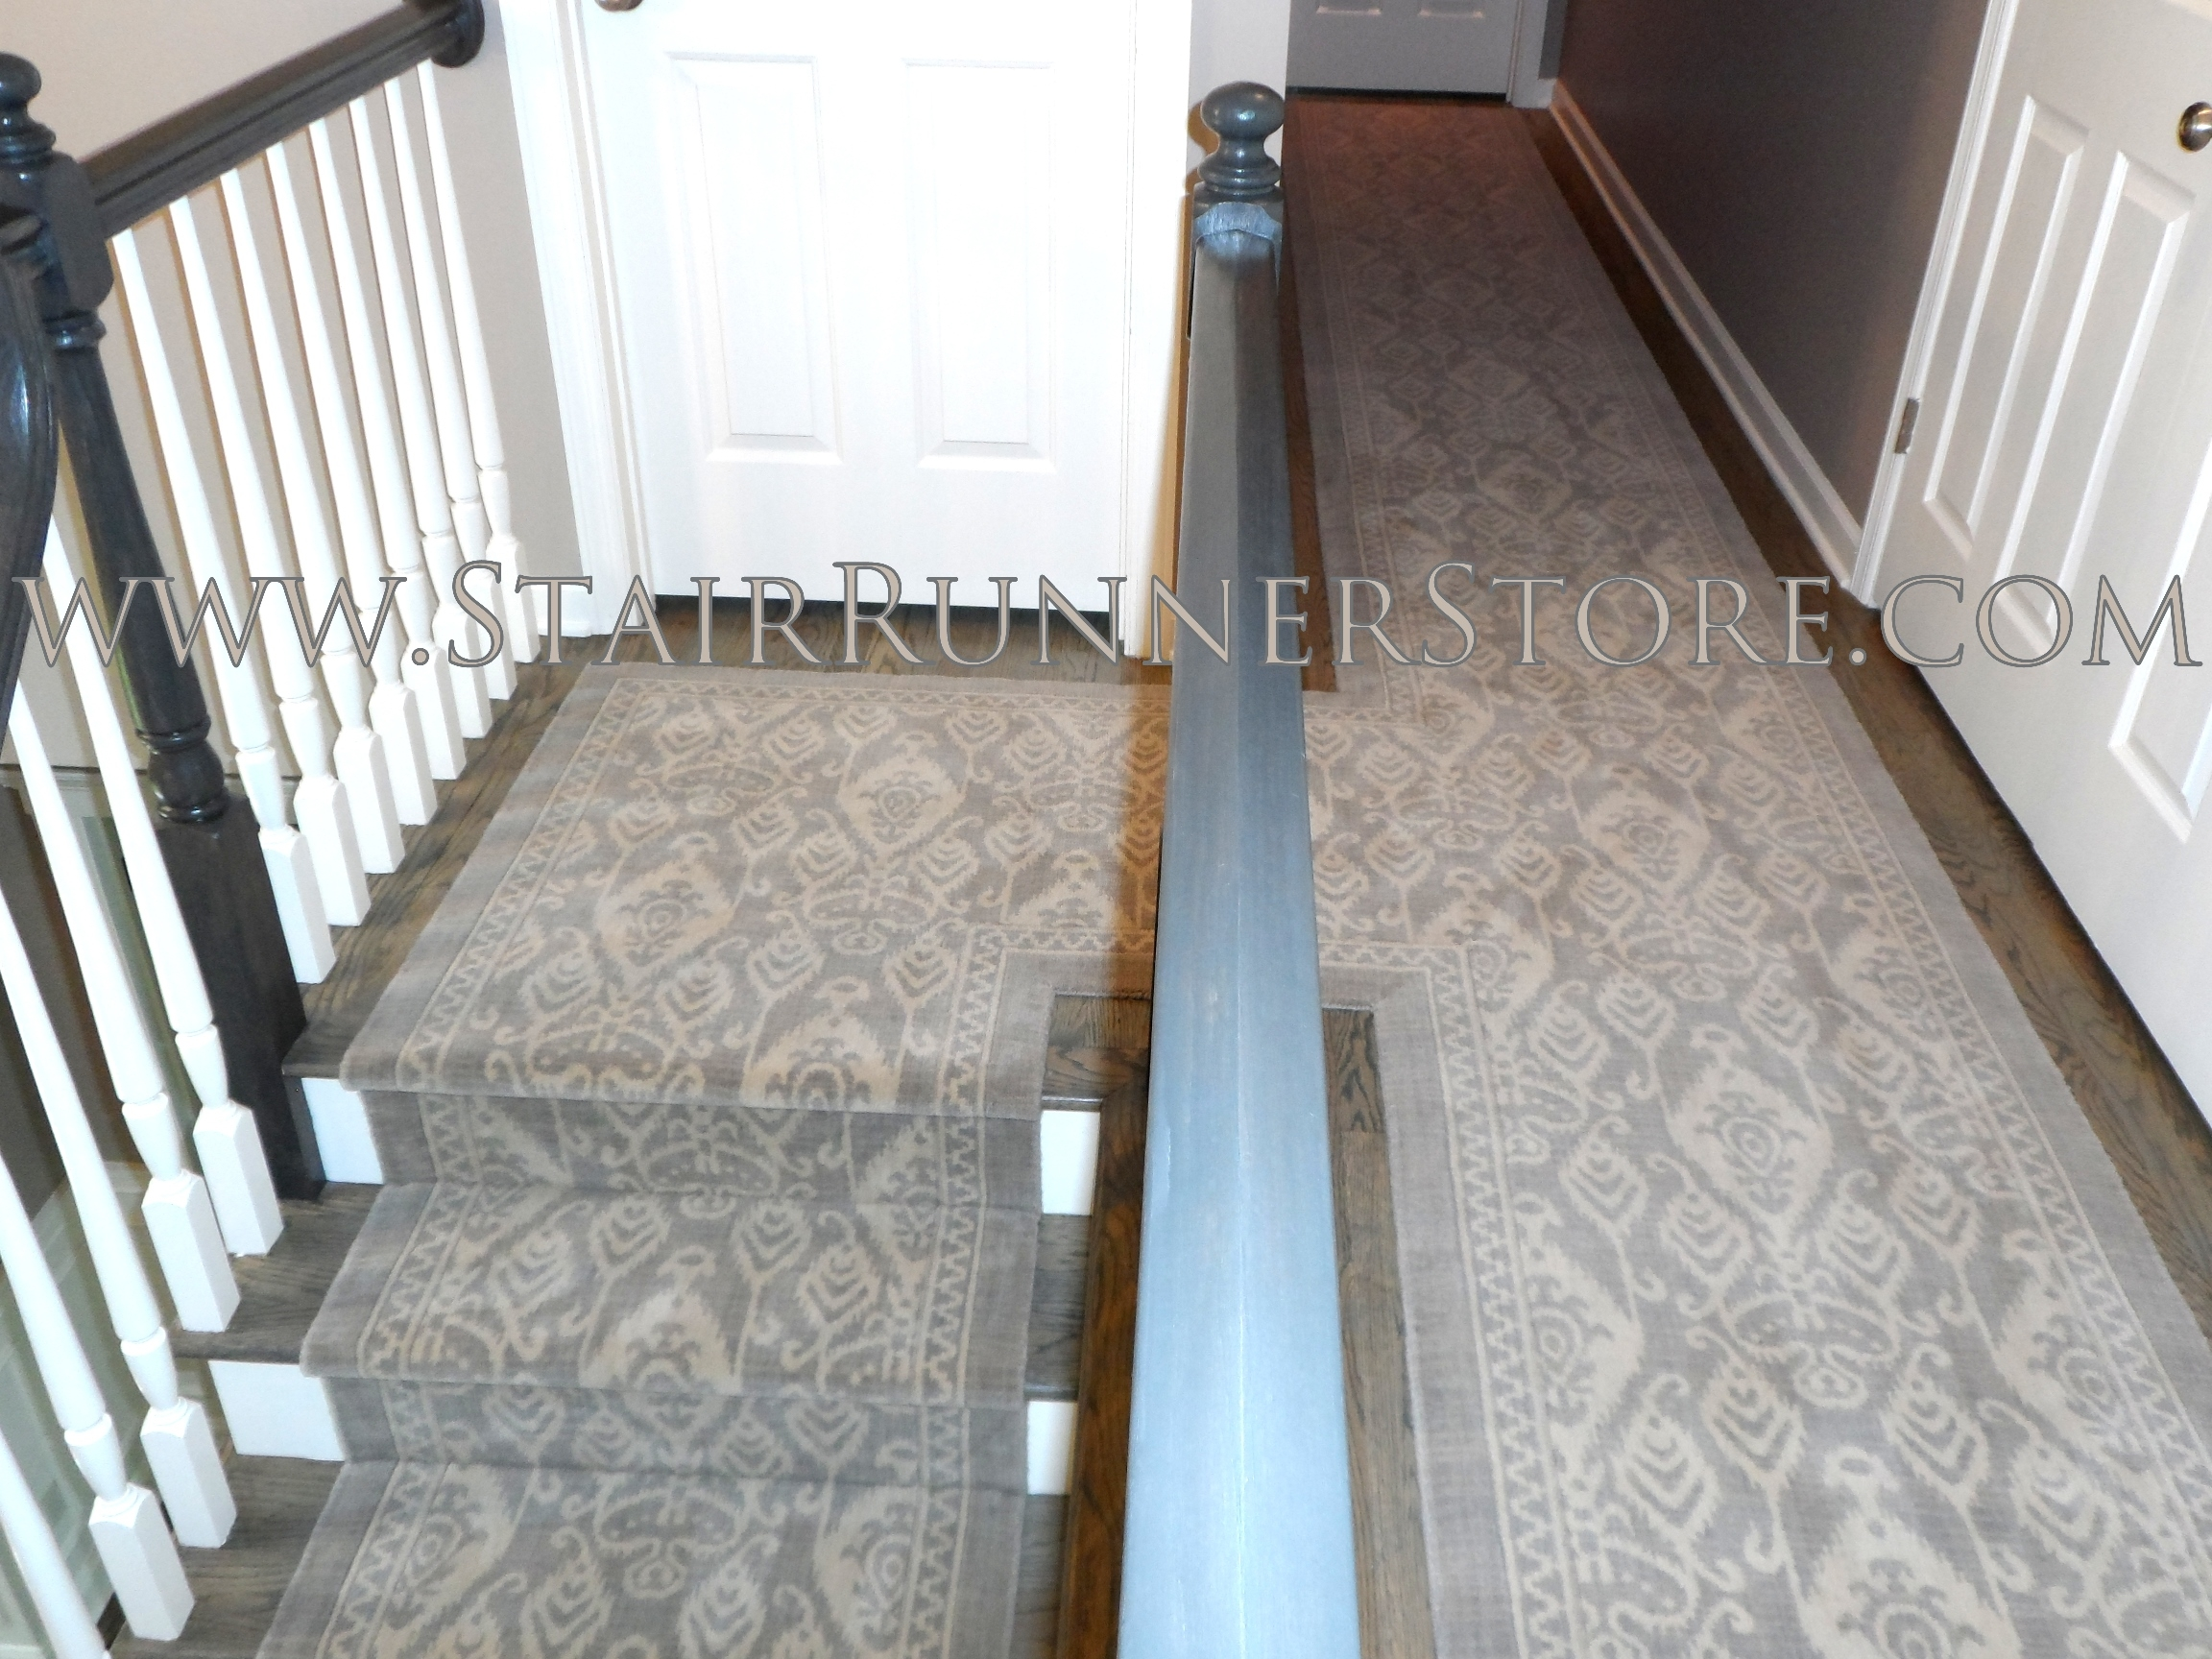 Custom Hallway Runner Installations Stair Runner Store Blog With Custom Hallway Runners (#8 of 20)